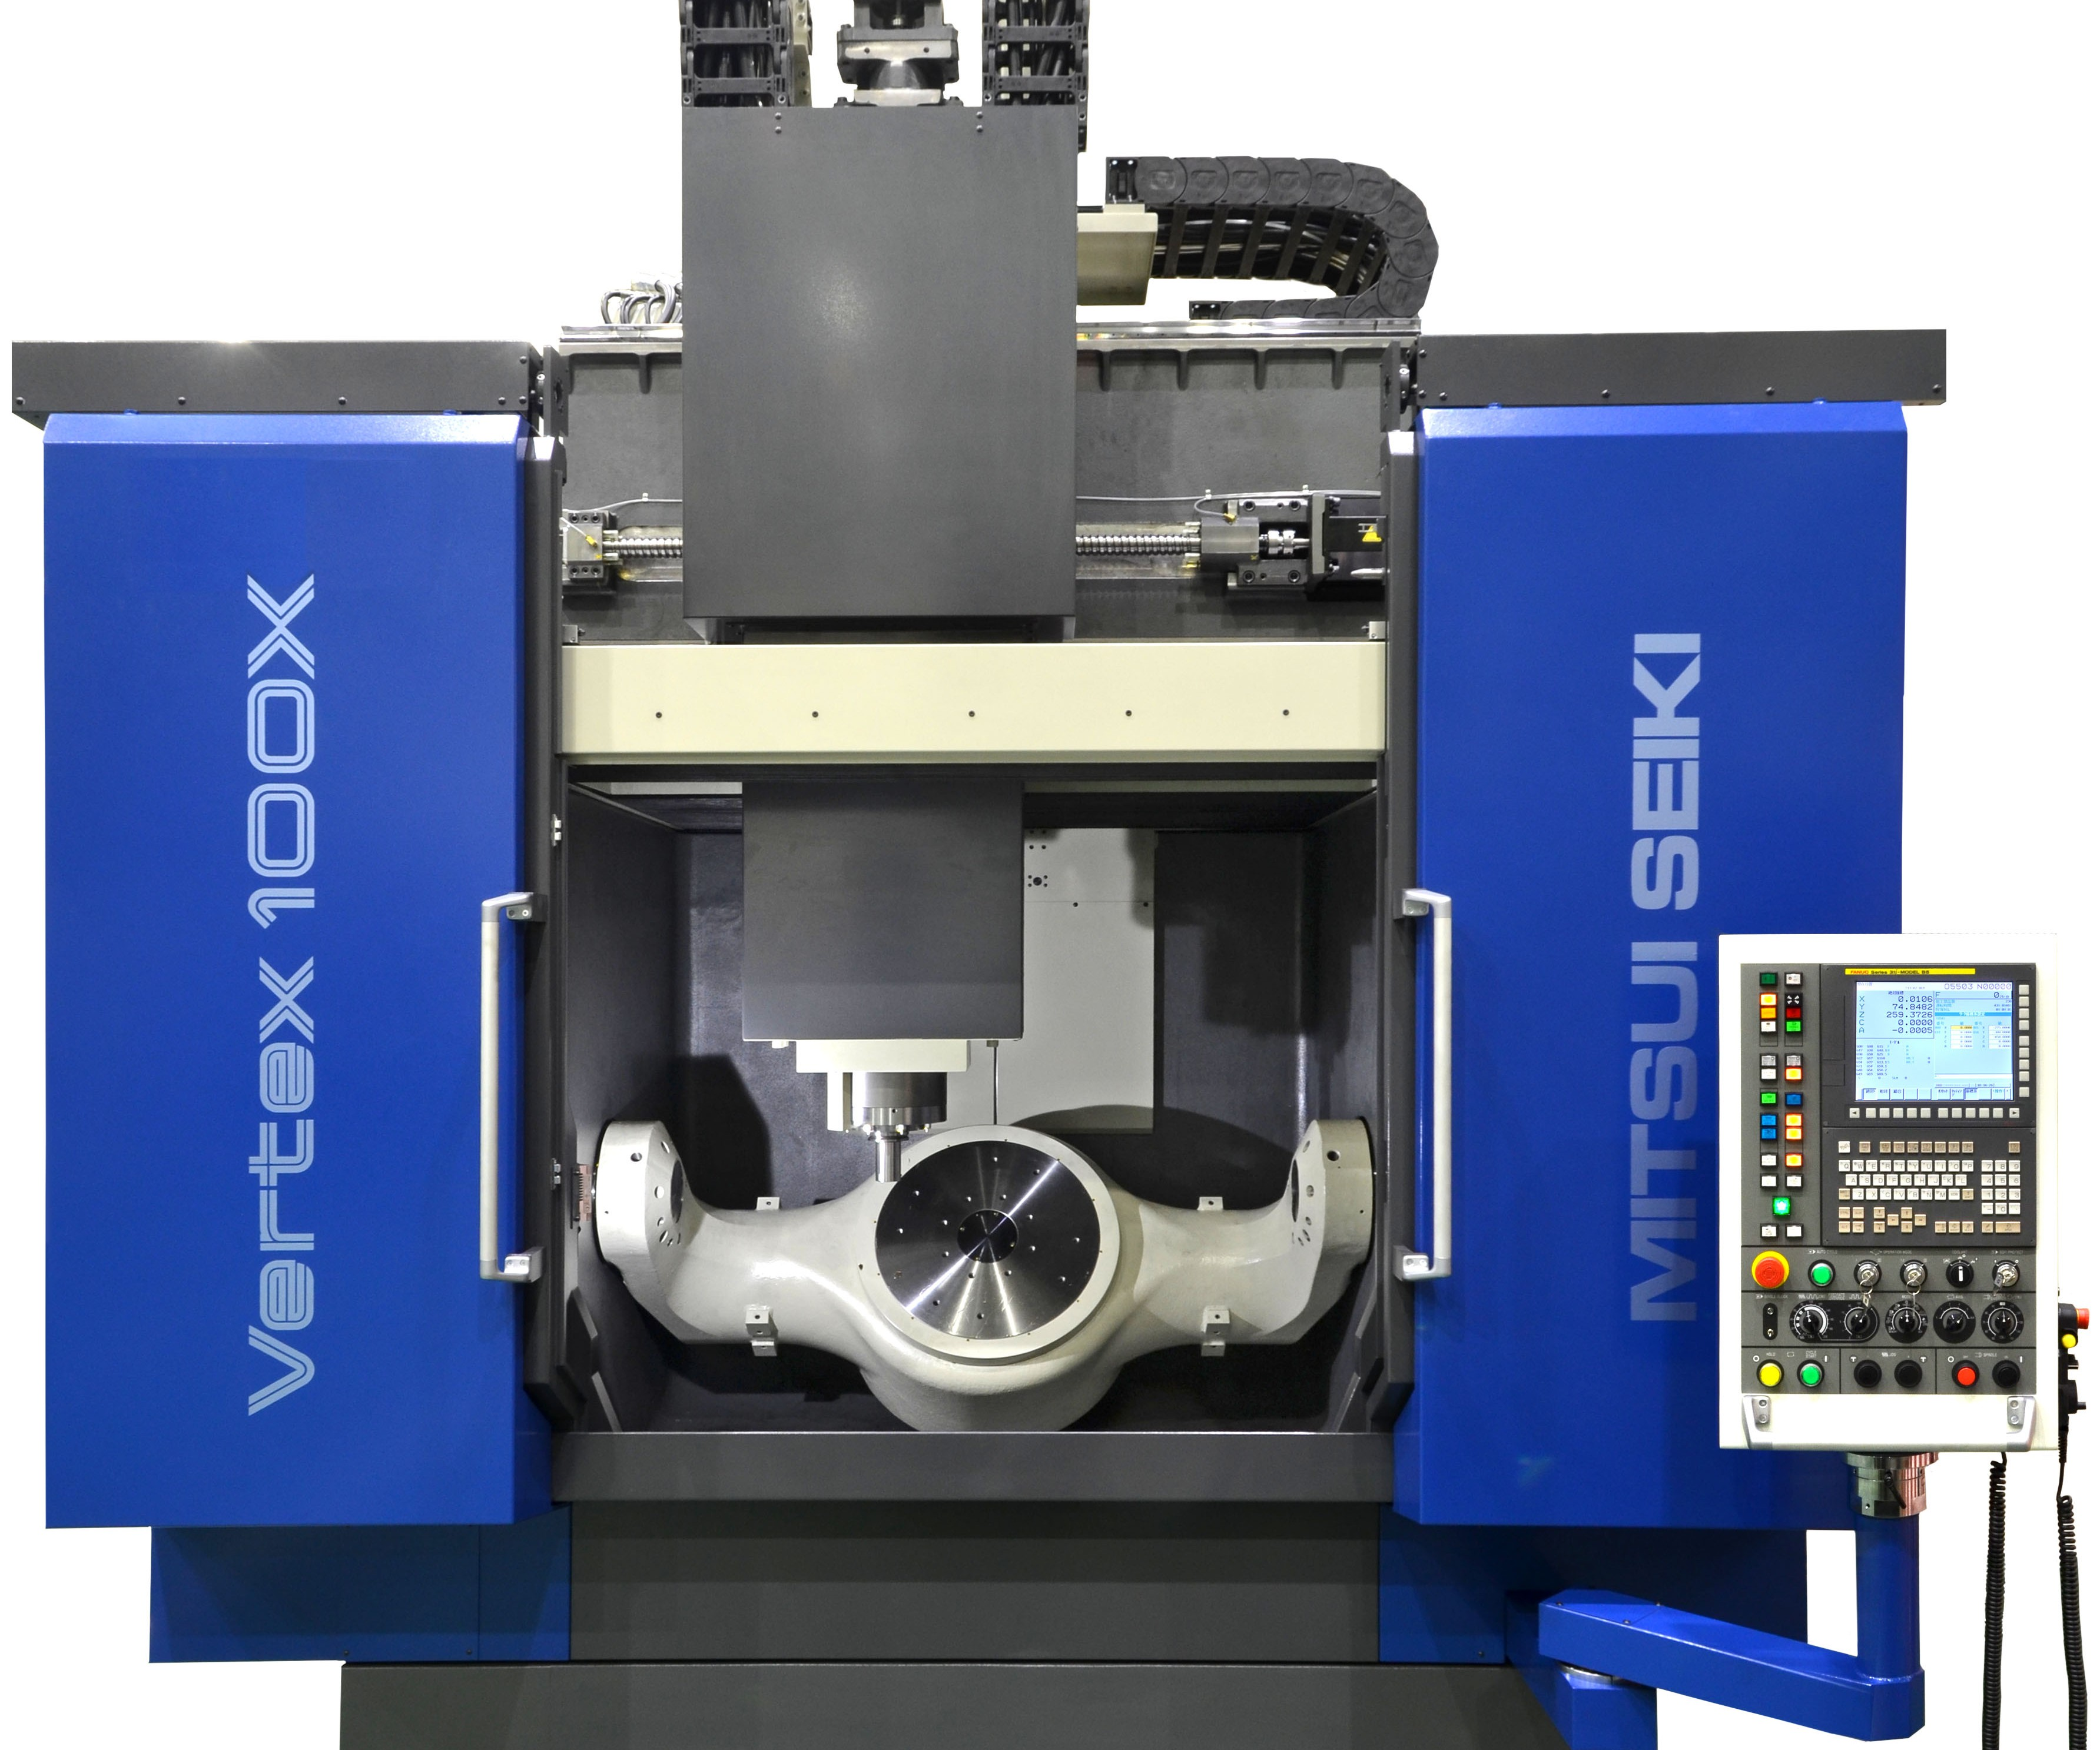 Mitsui Seiki will display its Vortex 100 VMC at IMTS 2018.